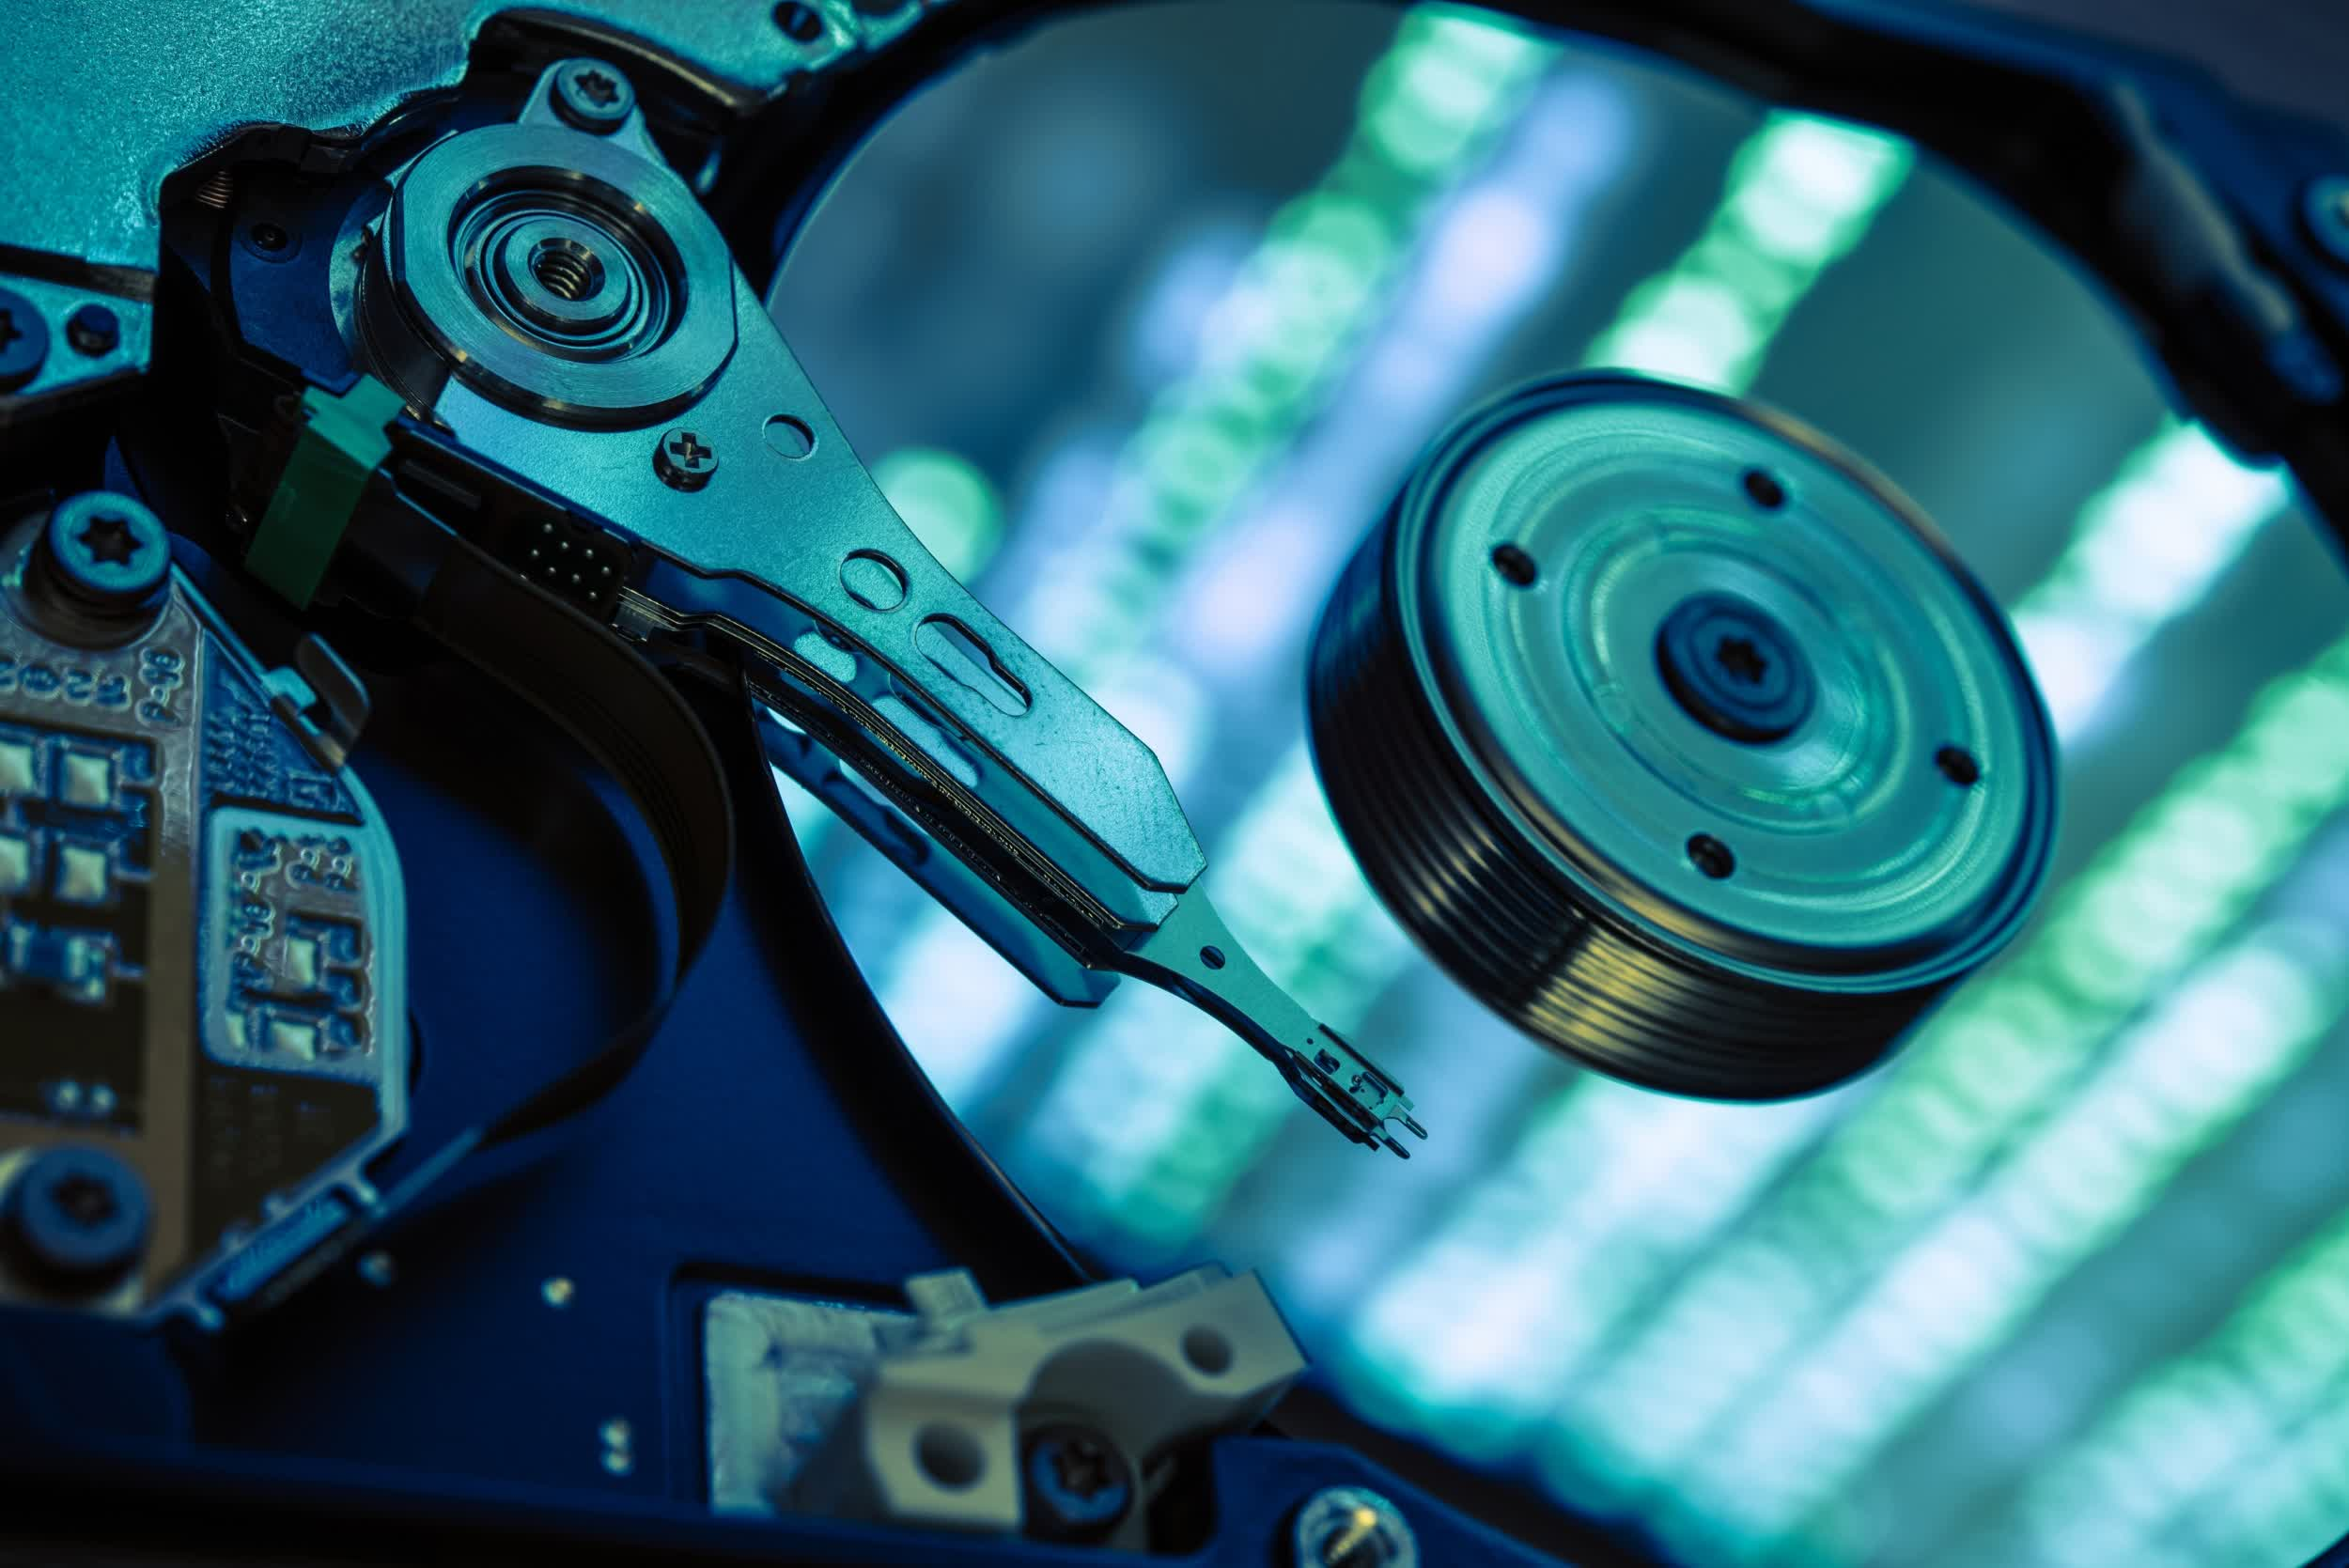 Seagate making progress on second-generation HAMR tech, 30-terabyte HDDs incoming